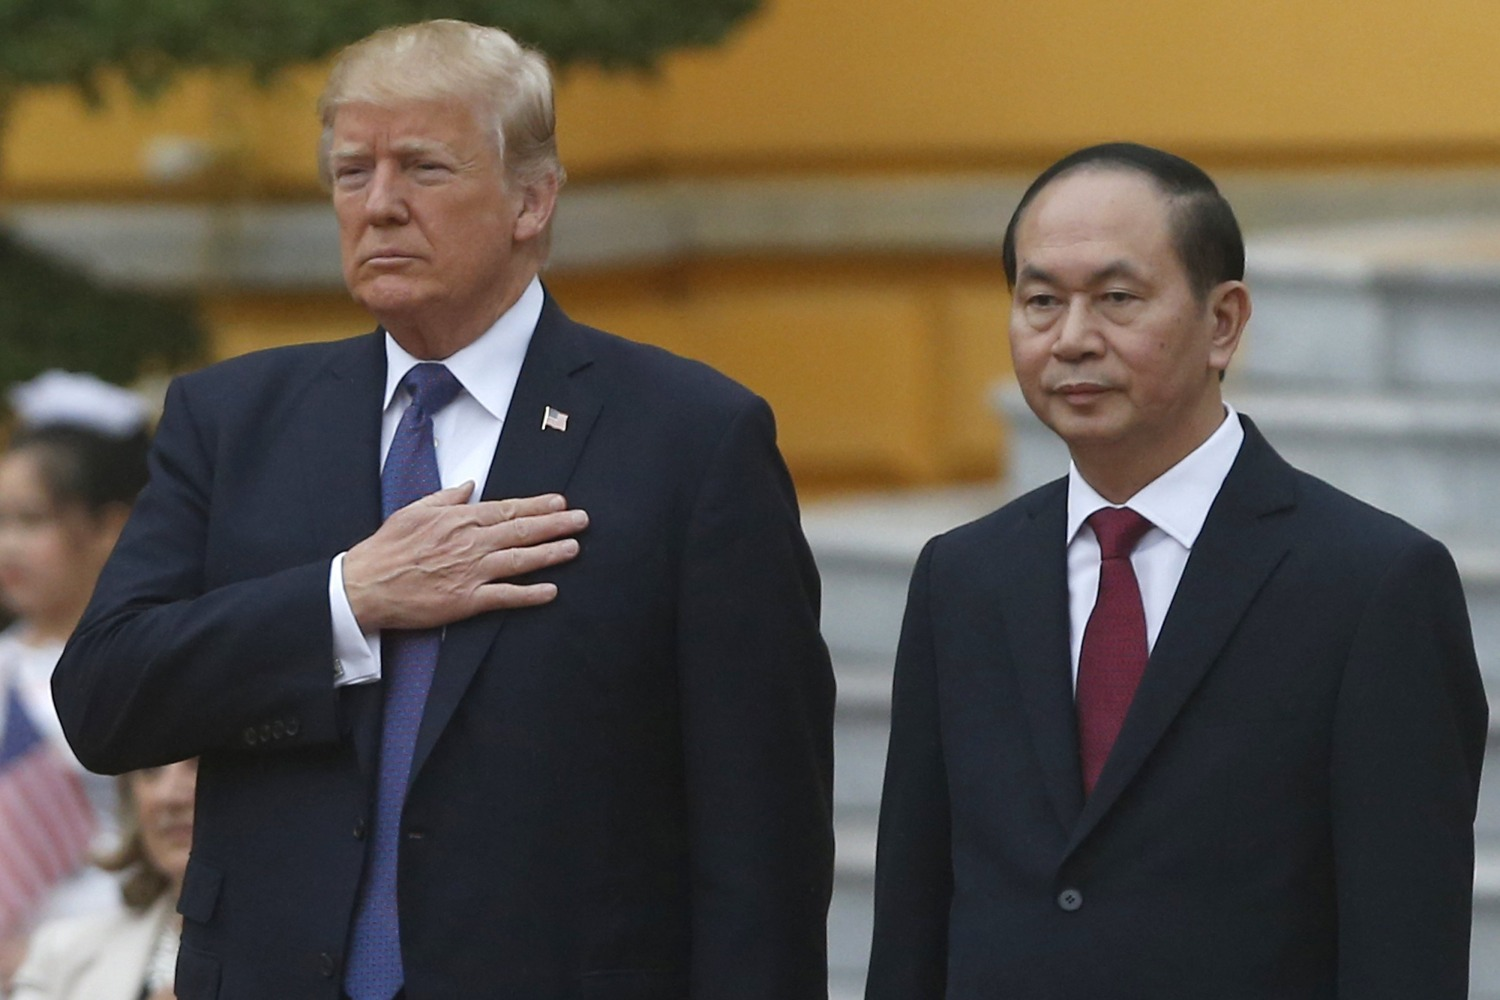 He wrote the book: Trump offers to solve South China Sea dispute